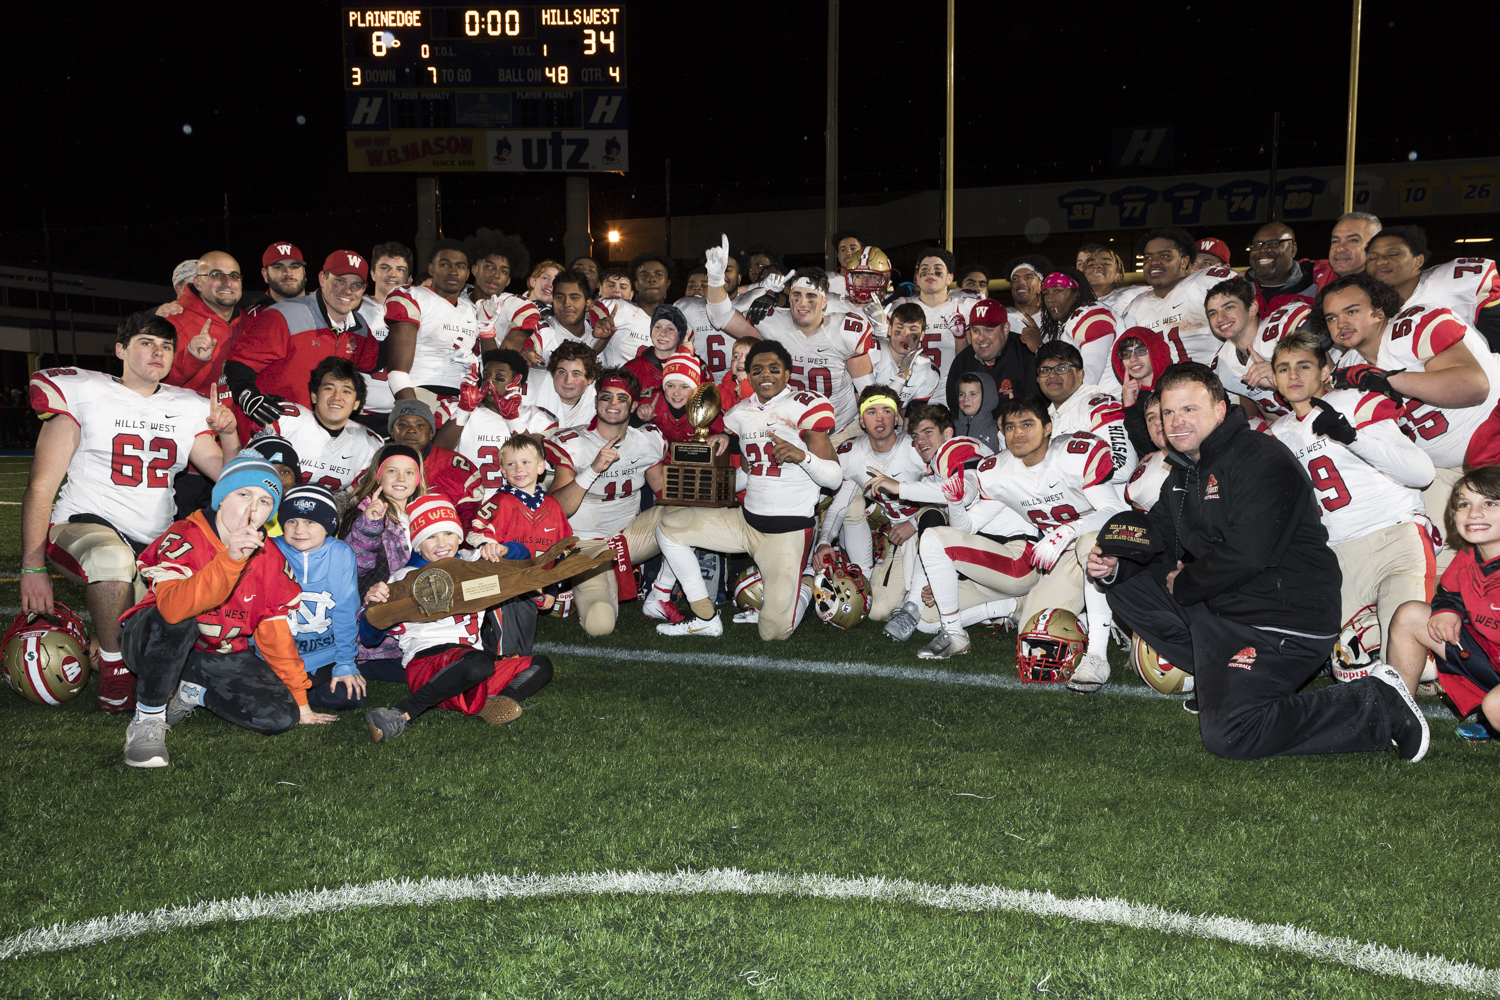 Hills West Football Team Crowned Long Island Champions!